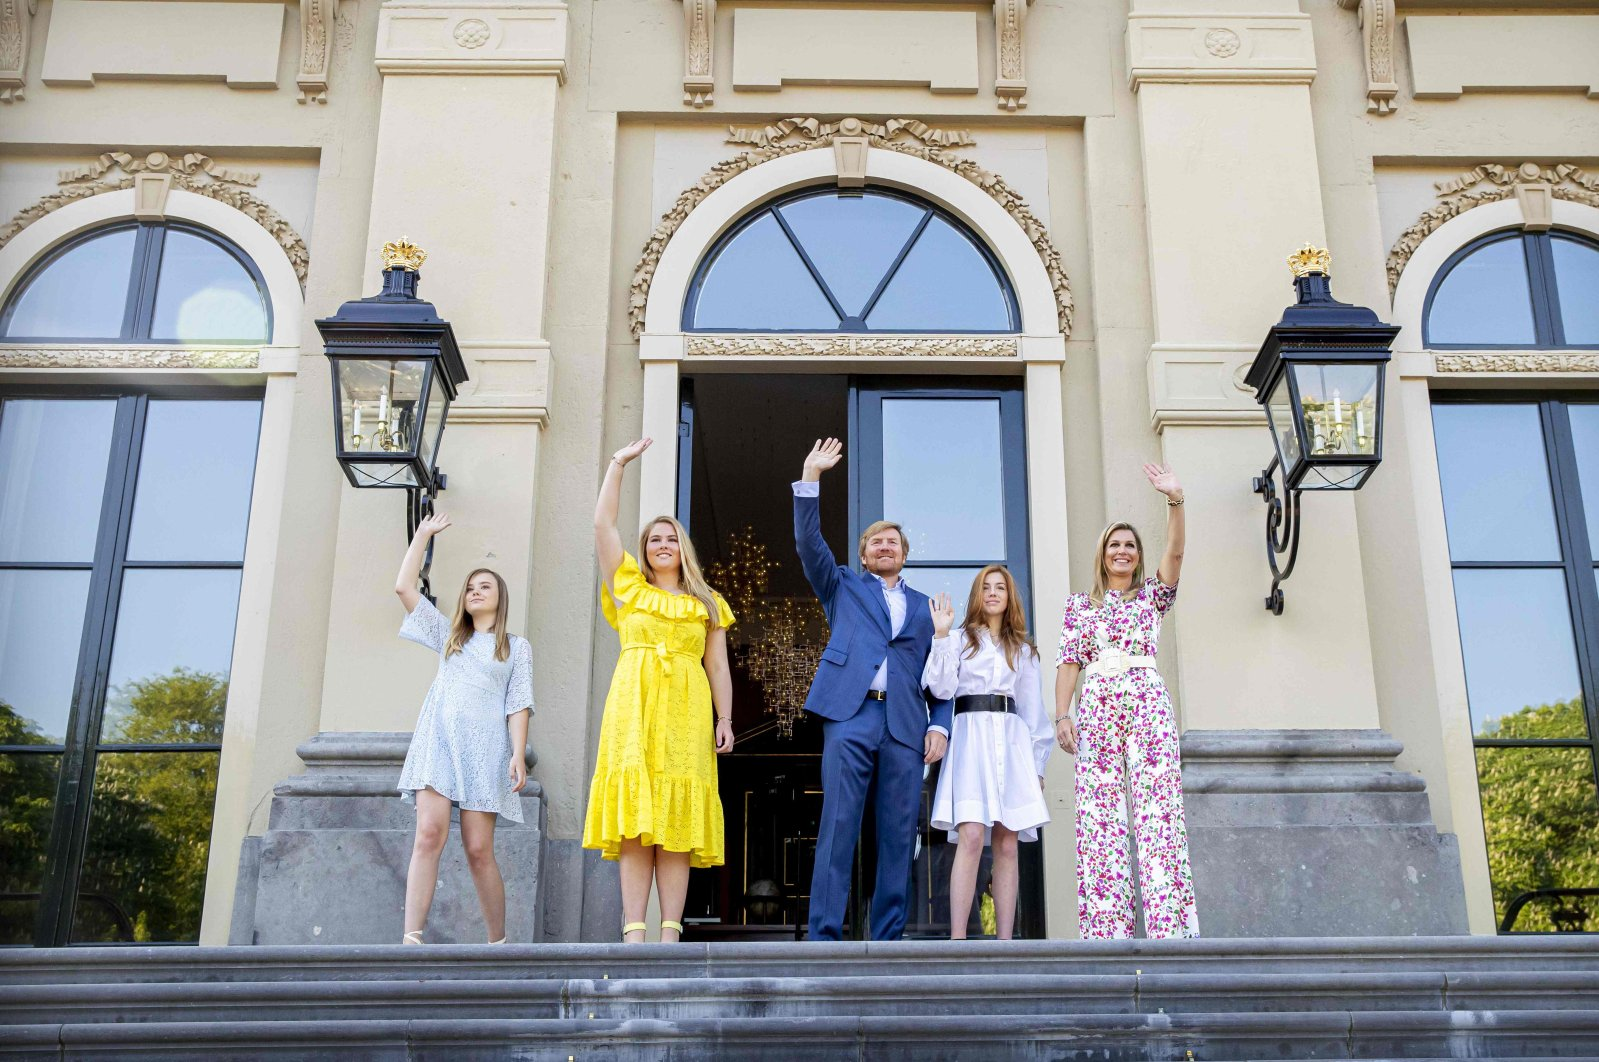 Dutch King Willem-Alexander, Queen Maxima (R) and their daughters, princesses Amalia, Alexia and Ariane celebrate King's Day in Huis ten Bosch Palace in The Hague on April 27, 2020. (AFP Photo)